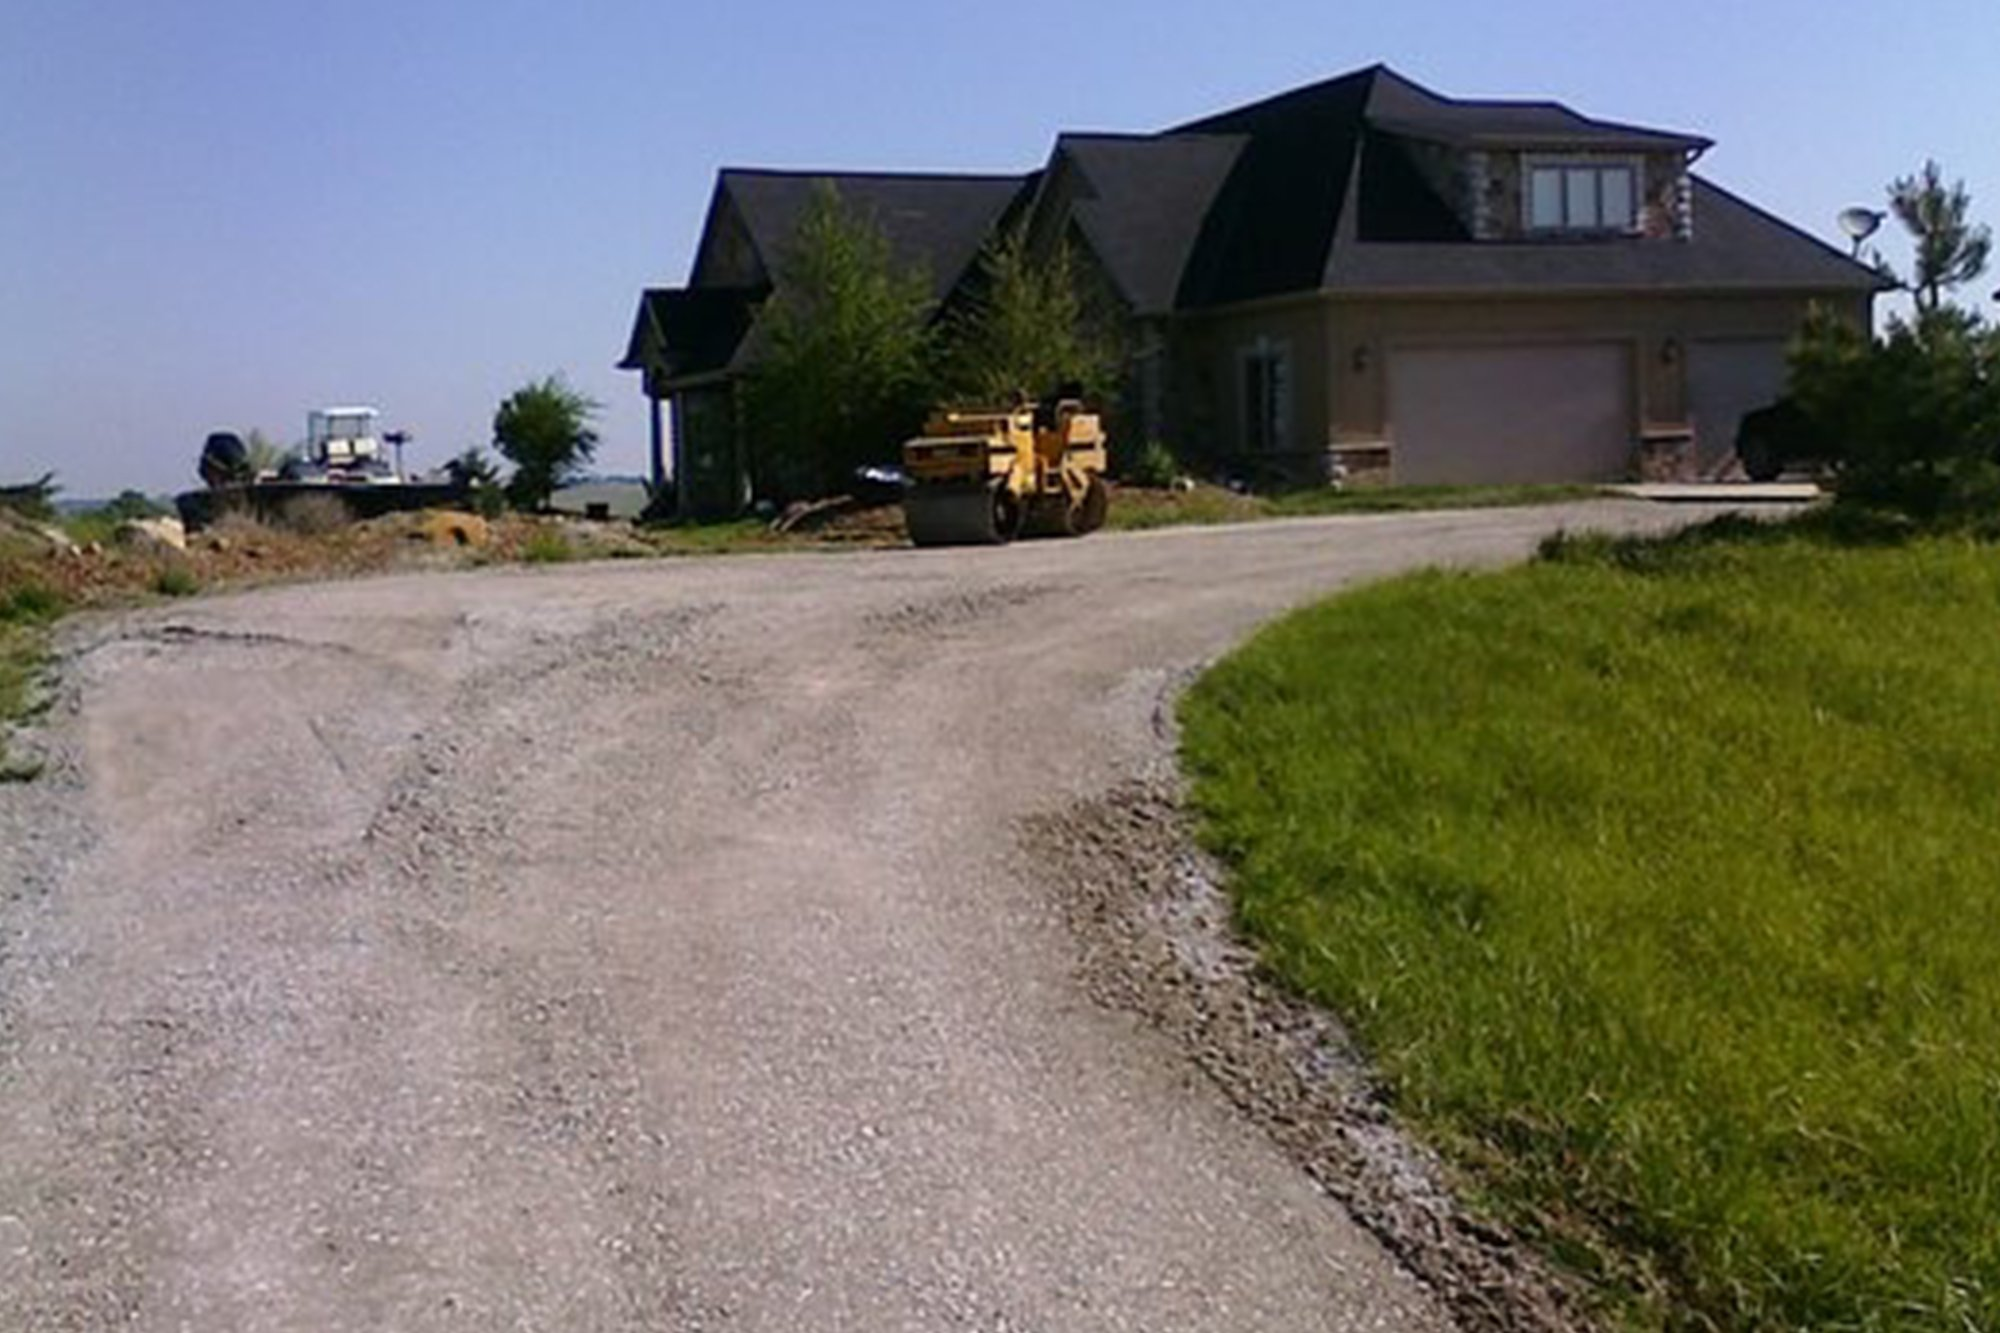 Lincoln Paving Asphalt and Driveway Repair and Patching Lincoln Asphalt paving and overlays home feature - Driveway Repair